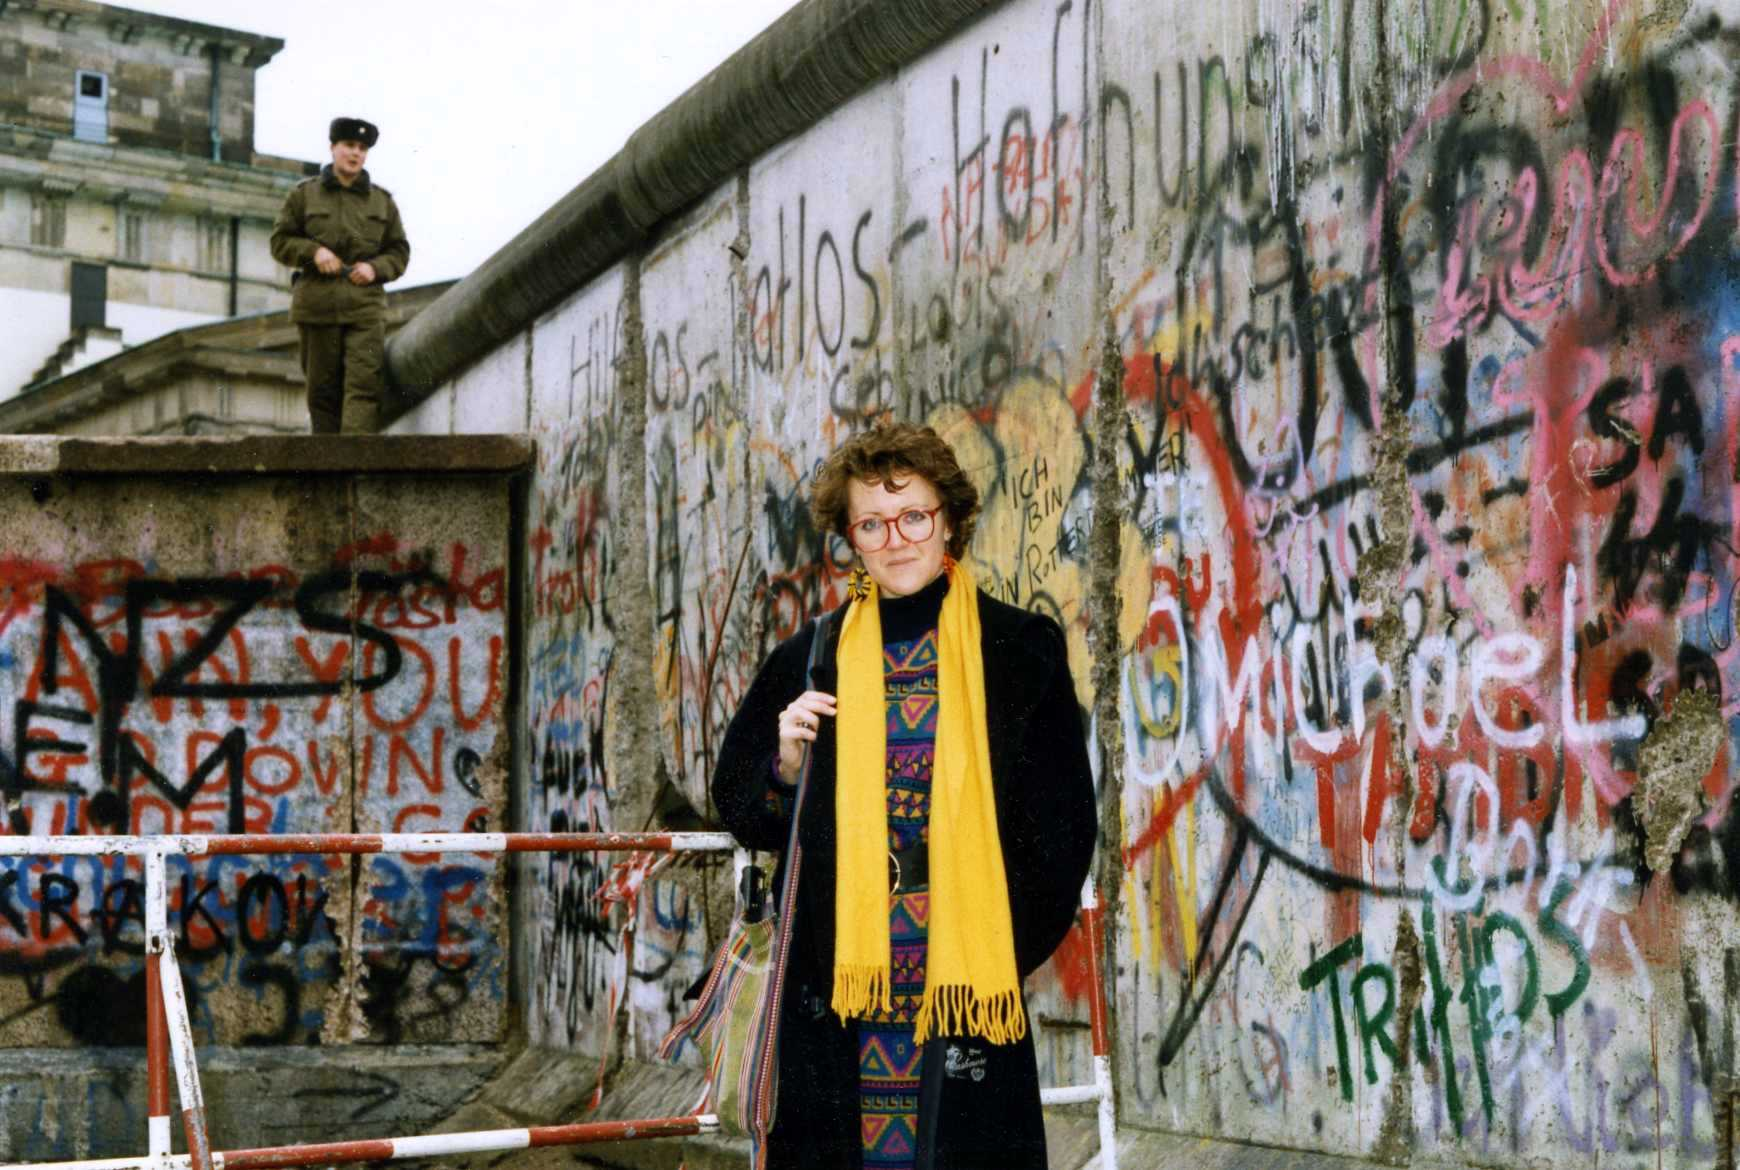 A photo of a woman in a yellow scarf standing in front of the Berlin Wall